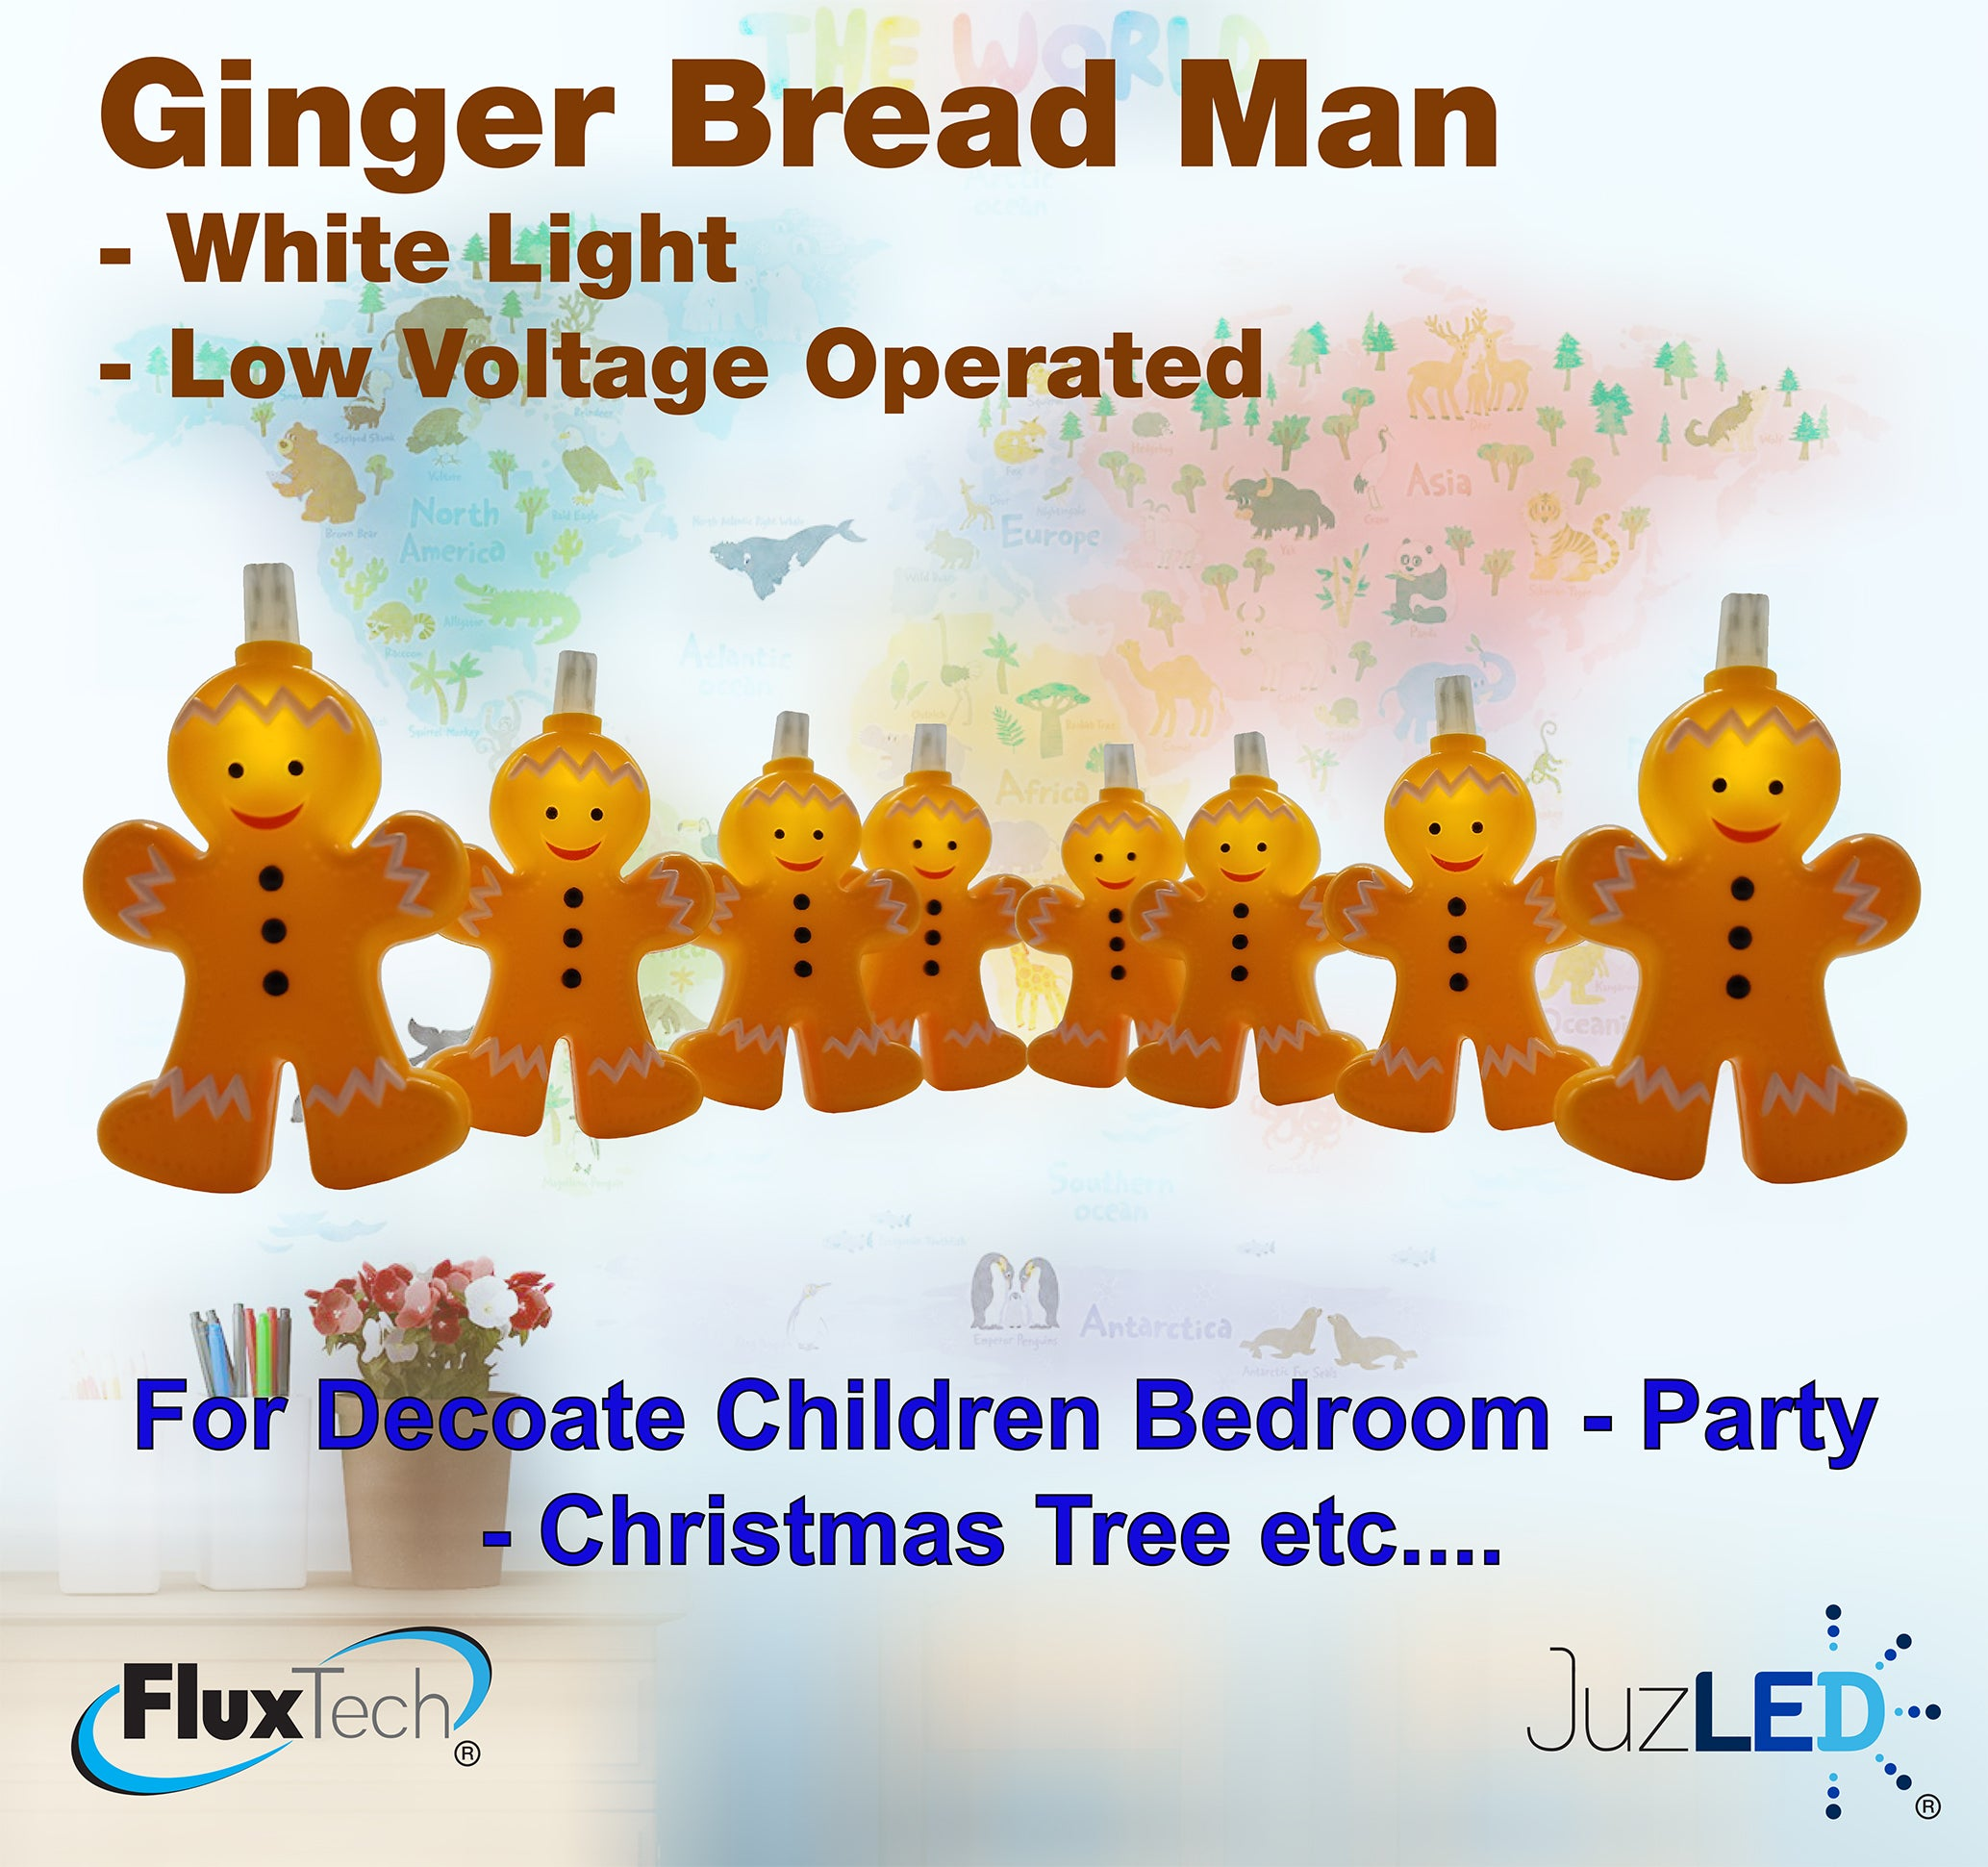 FluxTech - Ginger Bread Man 10 x White Colour LED String Lights by JustLED – Low Voltage Operated